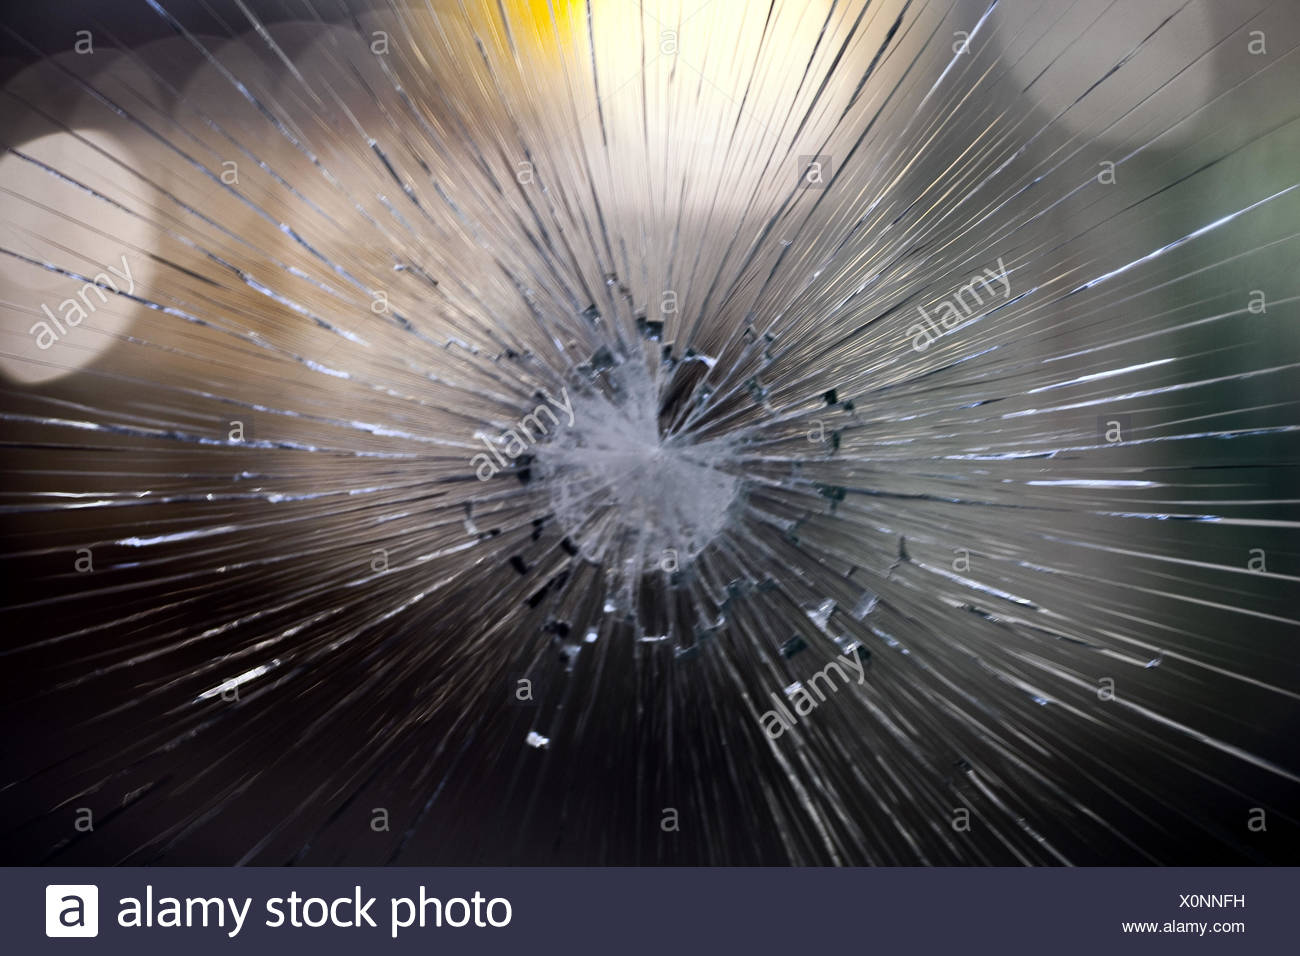 Bullet hole, safety glass pane, detail, - Stock Image